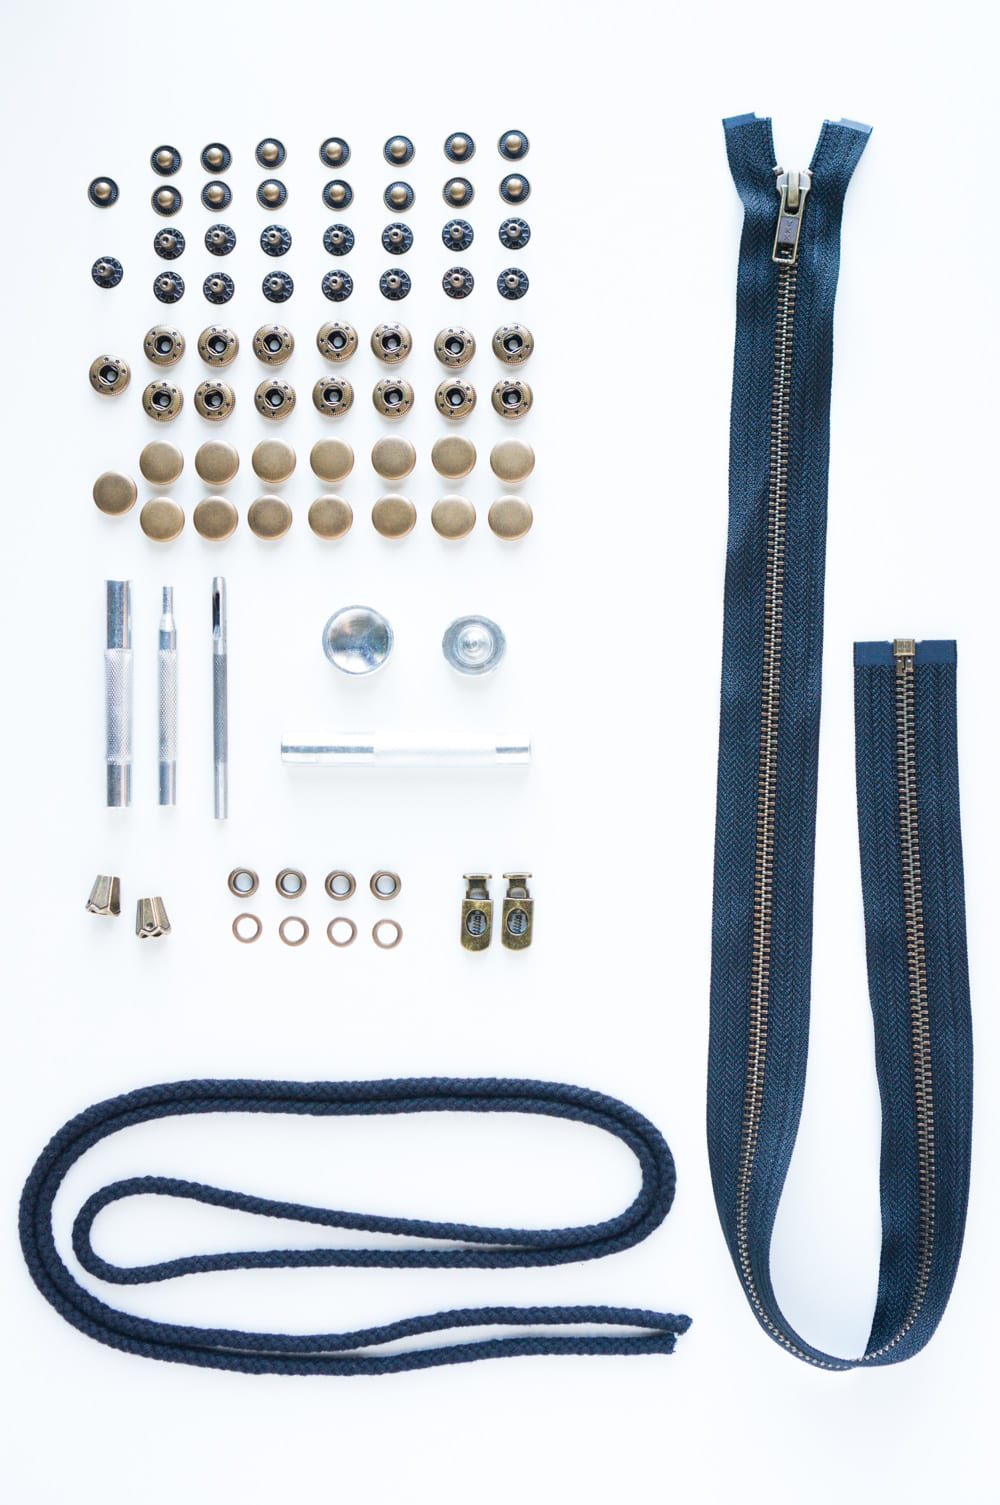 Kelly Anorak hardware kit (includes snap buttons, grommets, zipper & drawstring) // Closet Case Patterns